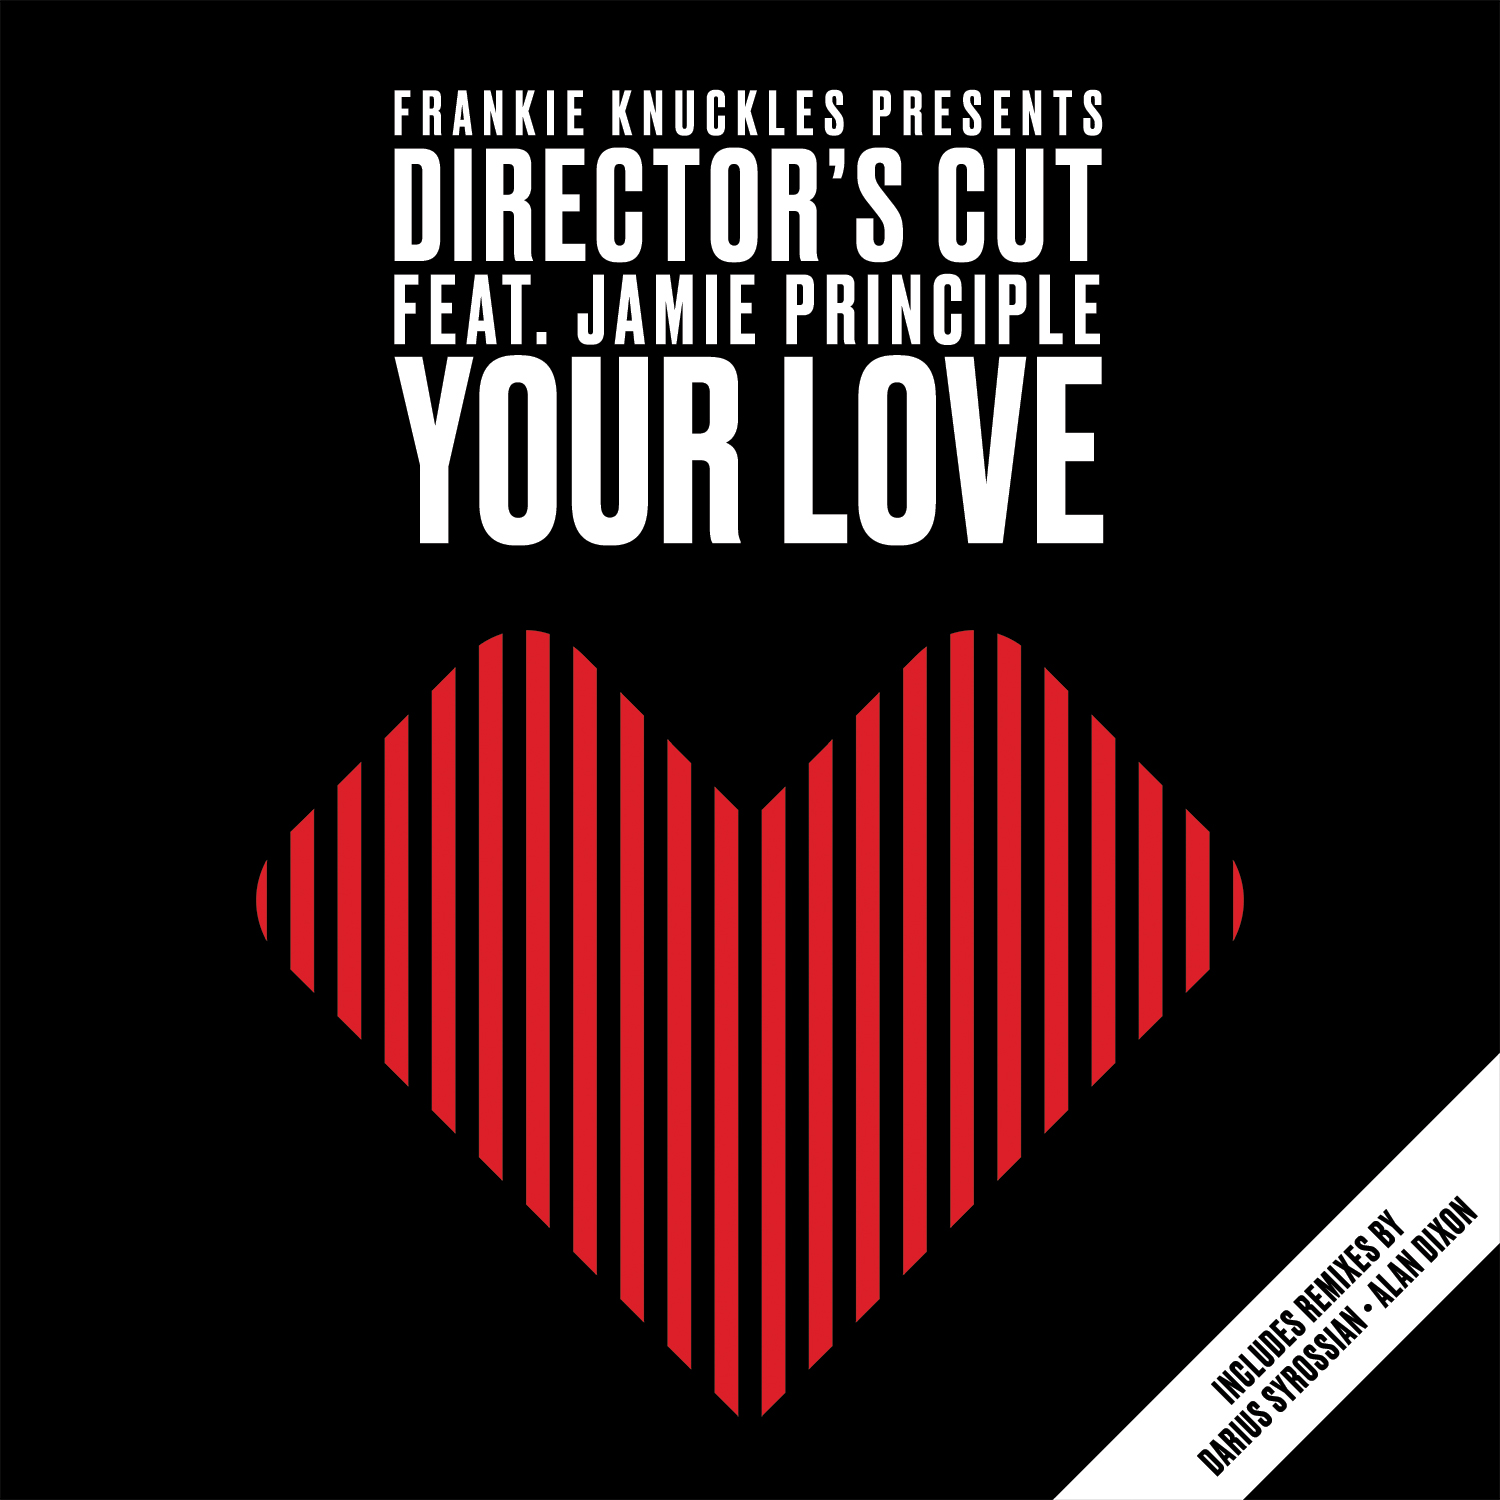 Frankie Knuckles pres. Director's Cut feat. Jamie Principle – Your Love